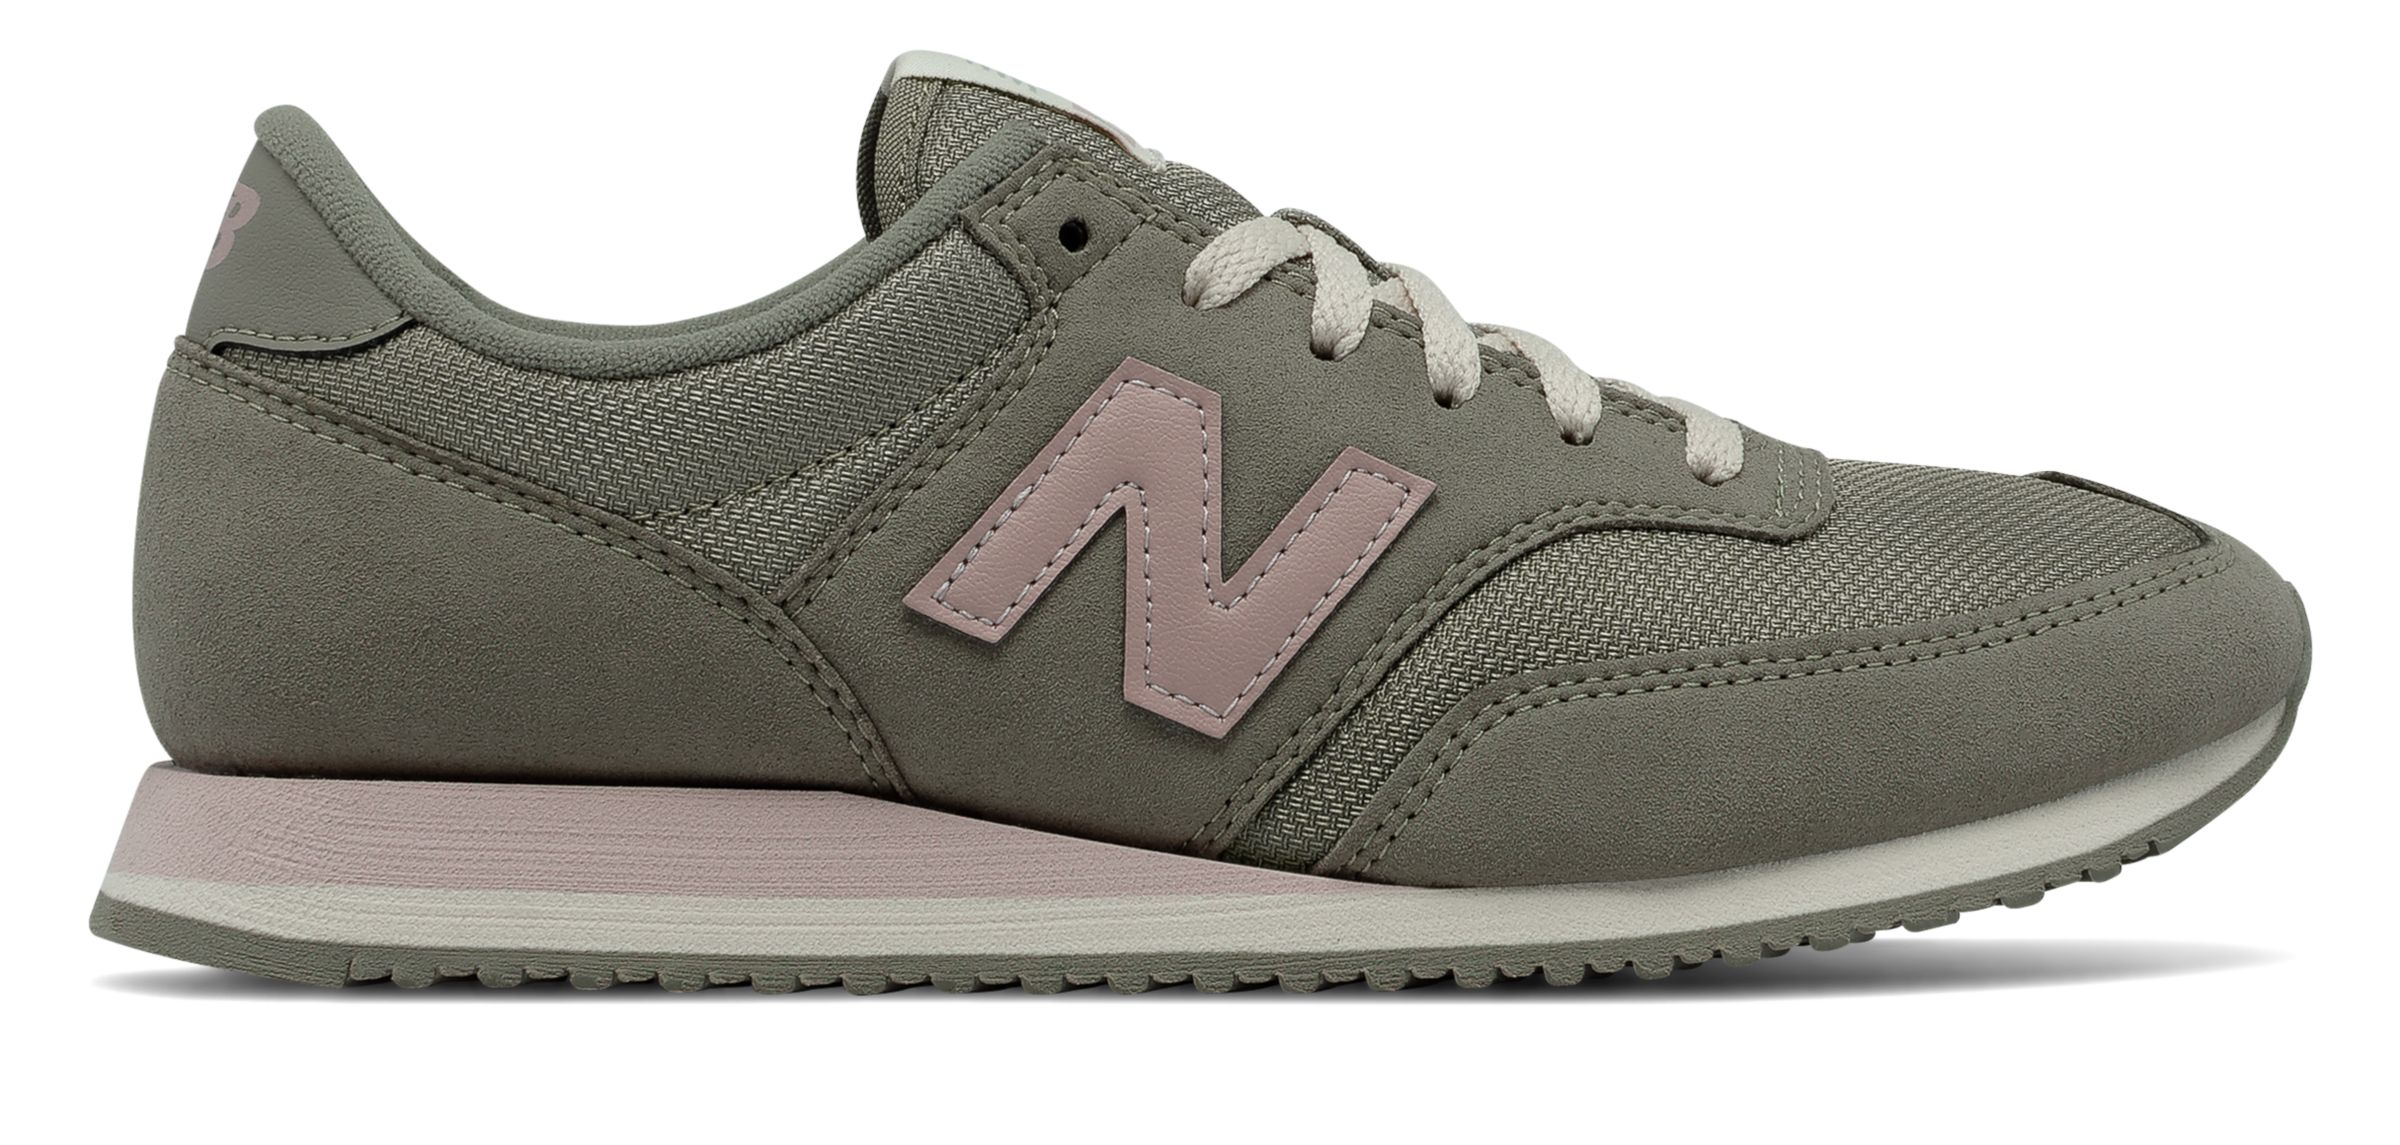 New Balance Women's 620 70s Running Shoes Green with Pink